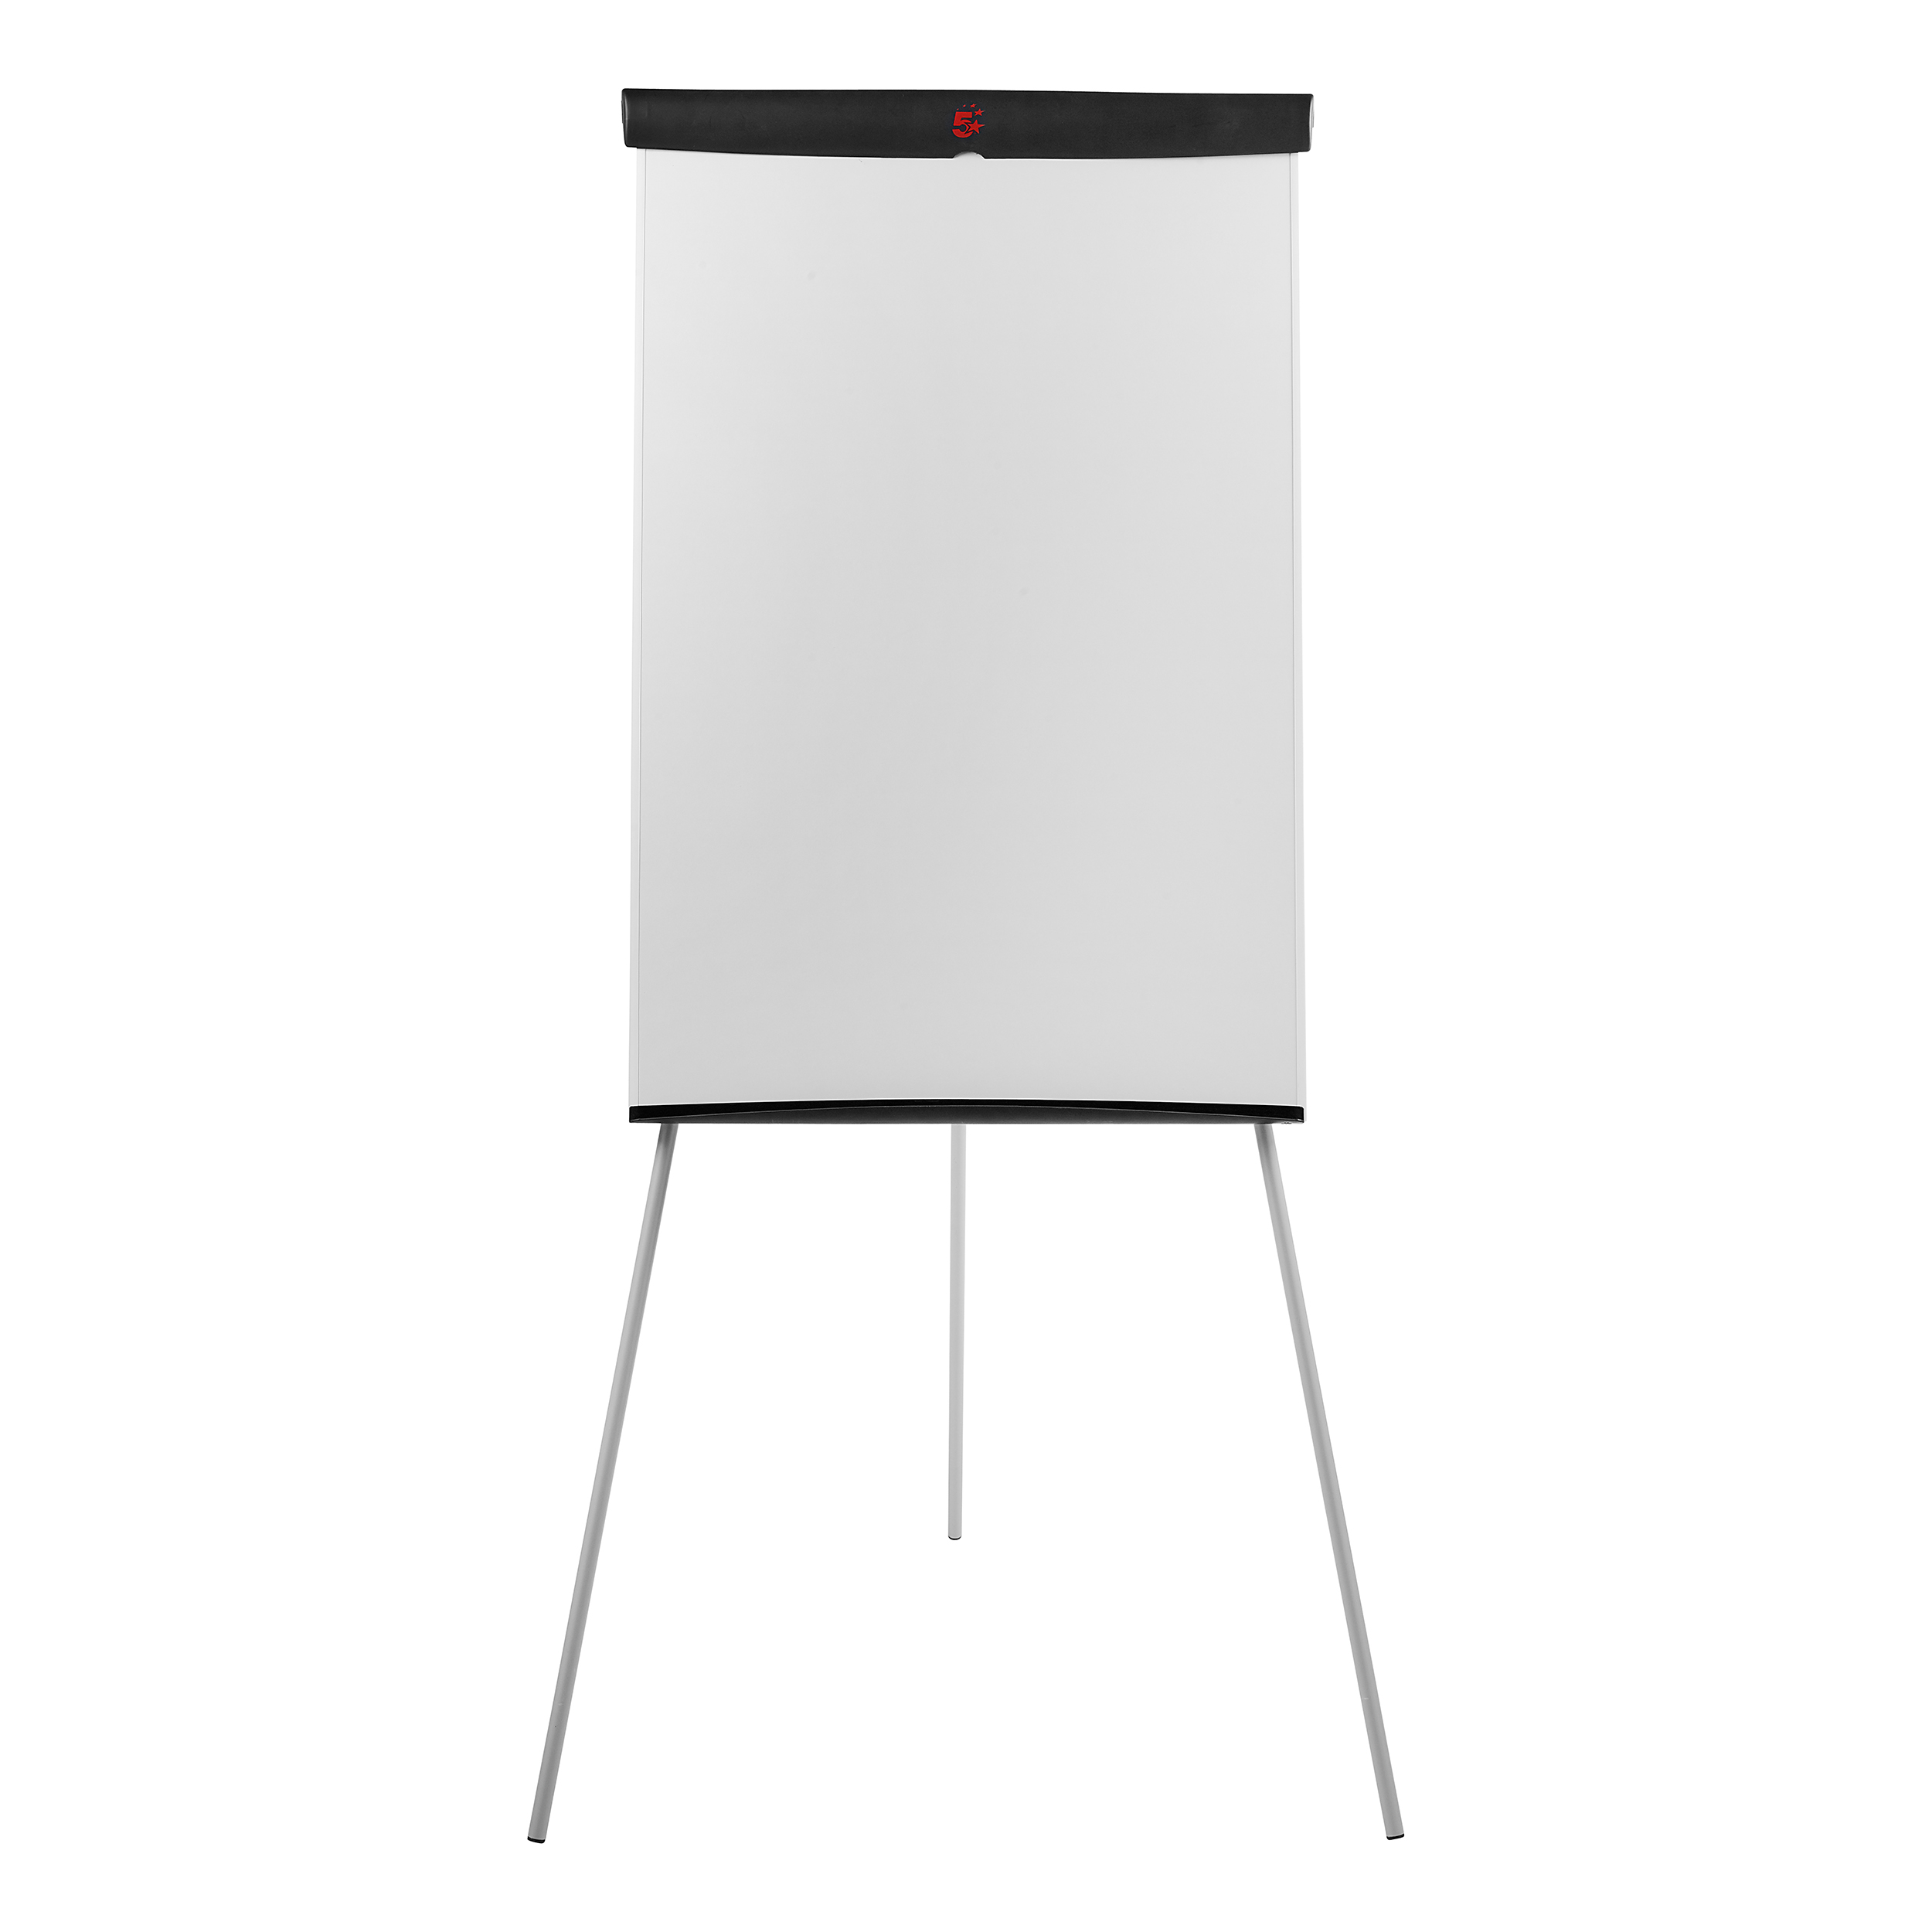 5 Star Office Flipchart Easel with W670xH990mm Board W700xD82xH1900mm Black Trim